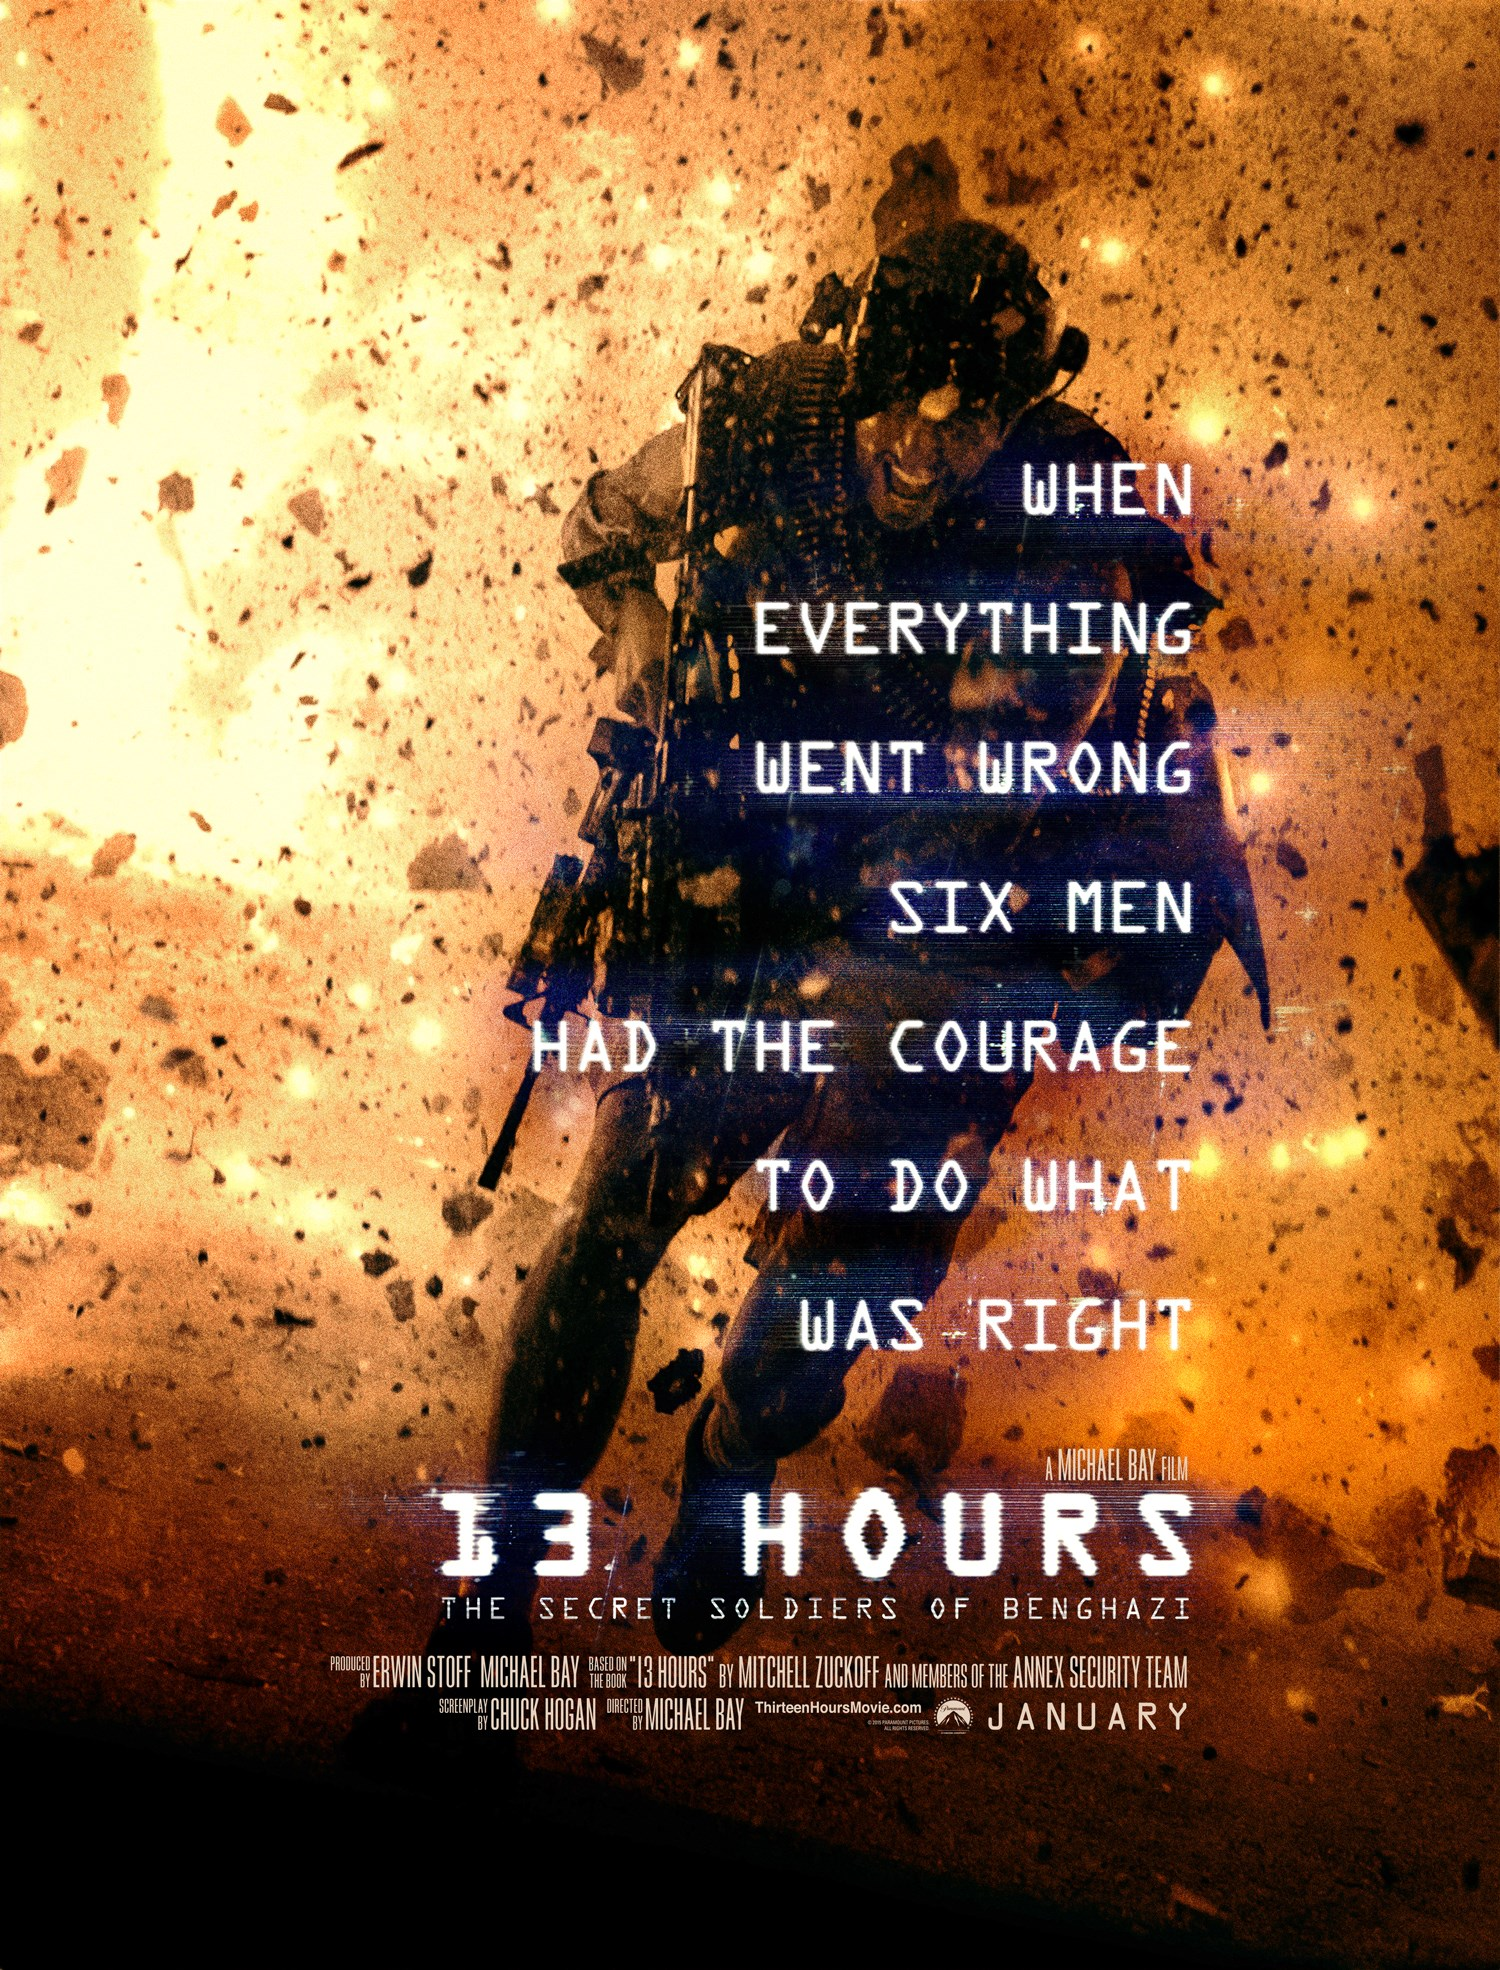 13 Hours: The Secret Soldiers Of Benghazi Backgrounds, Compatible - PC, Mobile, Gadgets| 1500x1970 px